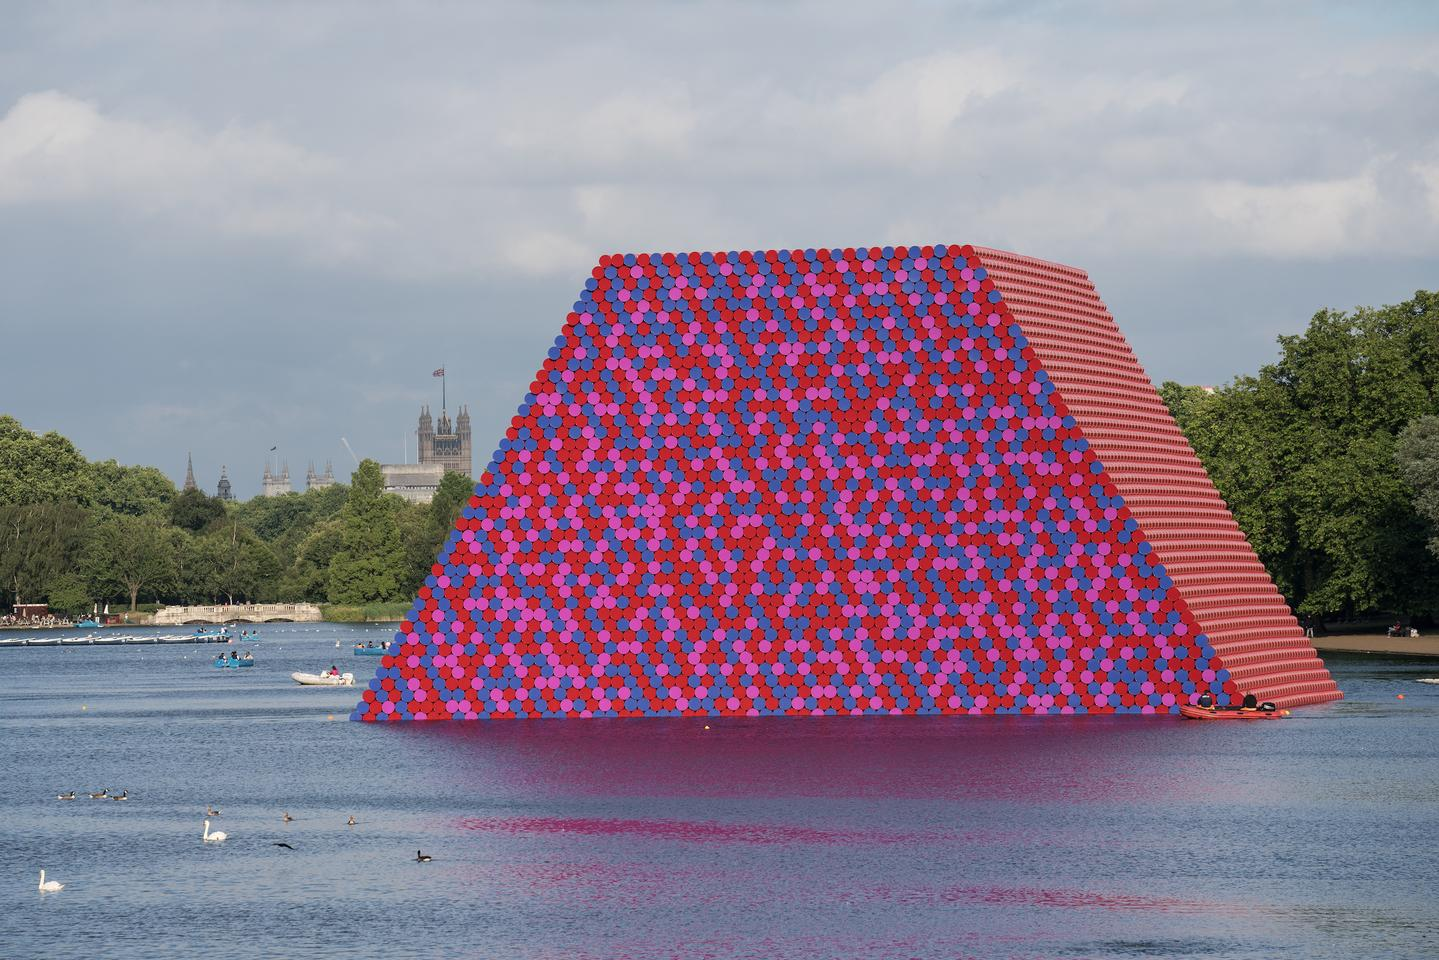 Not all of Christo and Jeanne-Claude's works were focused on fabric and wrapping things. The London Mastaba was a temporary sculpture in London's Hyde Park that consisted of oil barrels floating on a platform in the Serpentine Lake in 2018. In all, 7,506 horizontally stacked barrels were used